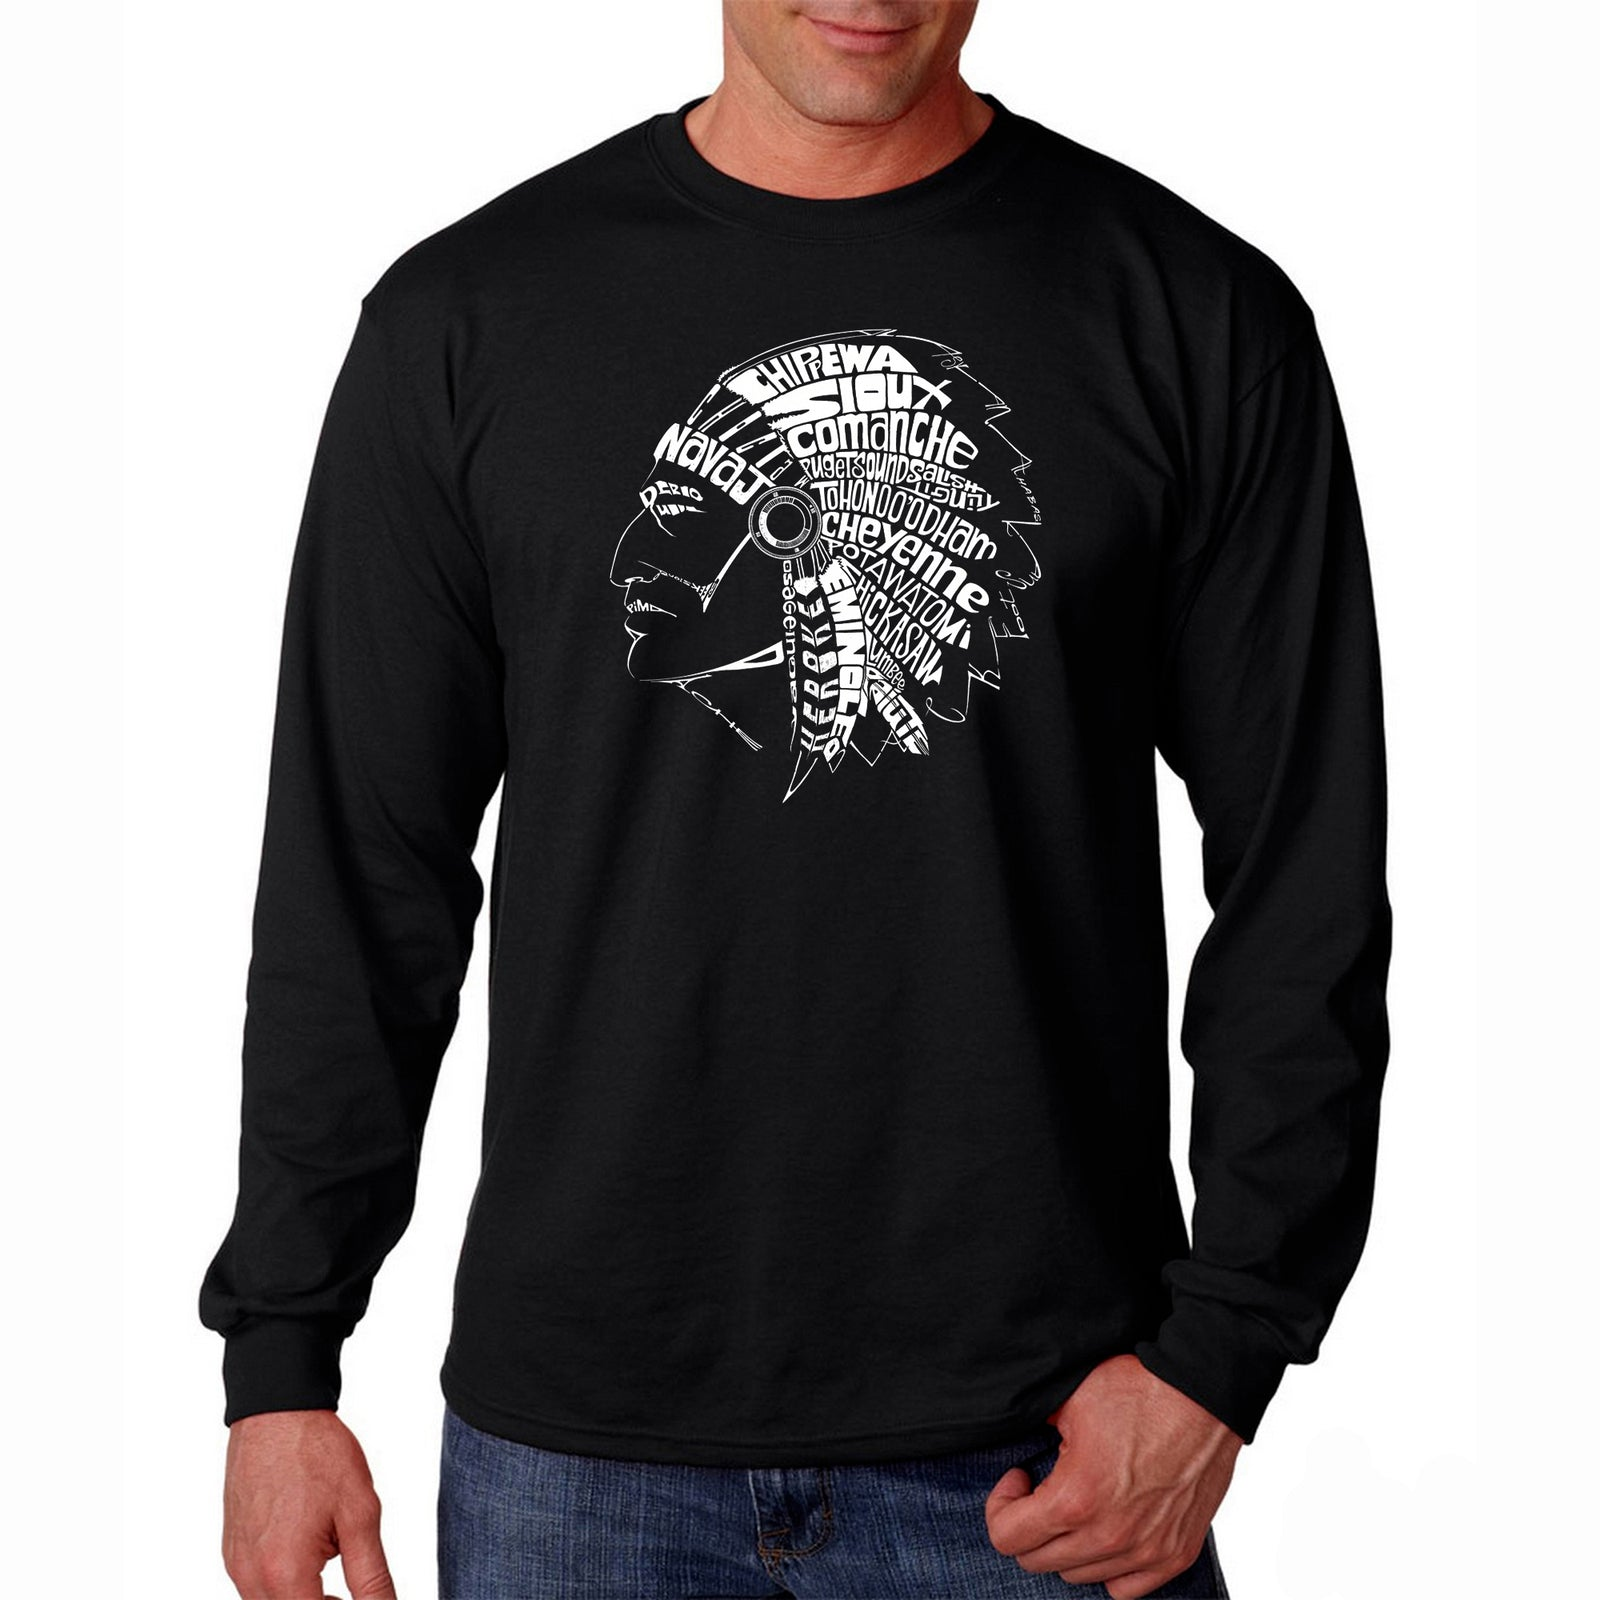 Men's Long Sleeve T-shirt - POPULAR NATIVE AMERICAN INDIAN TRIBES